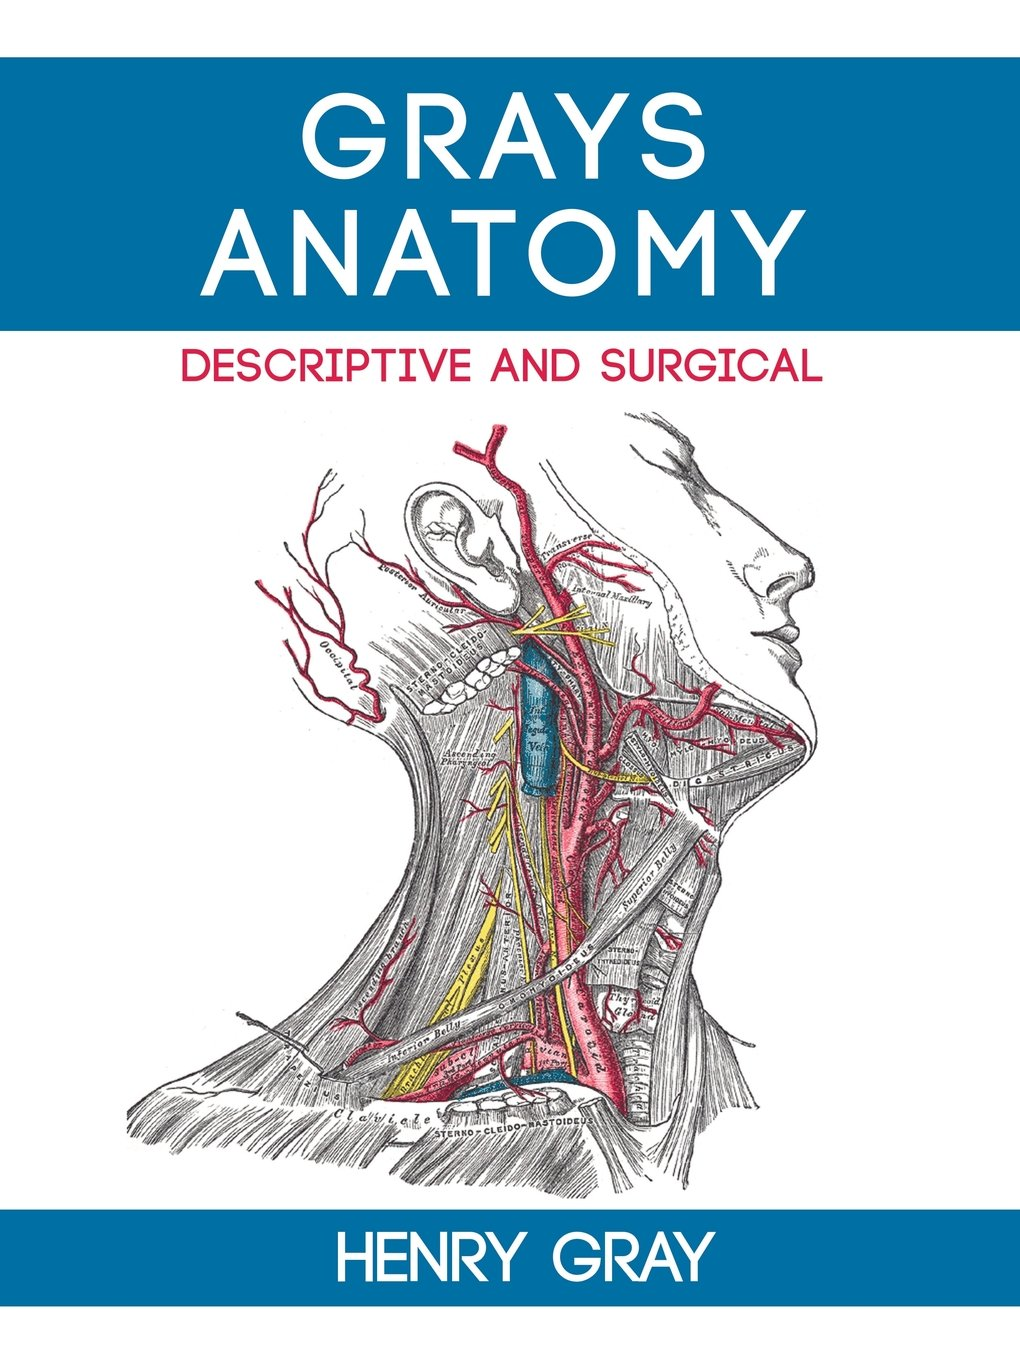 Grays Anatomy Descriptive And Surgical Henry Vandyke Carter Henry